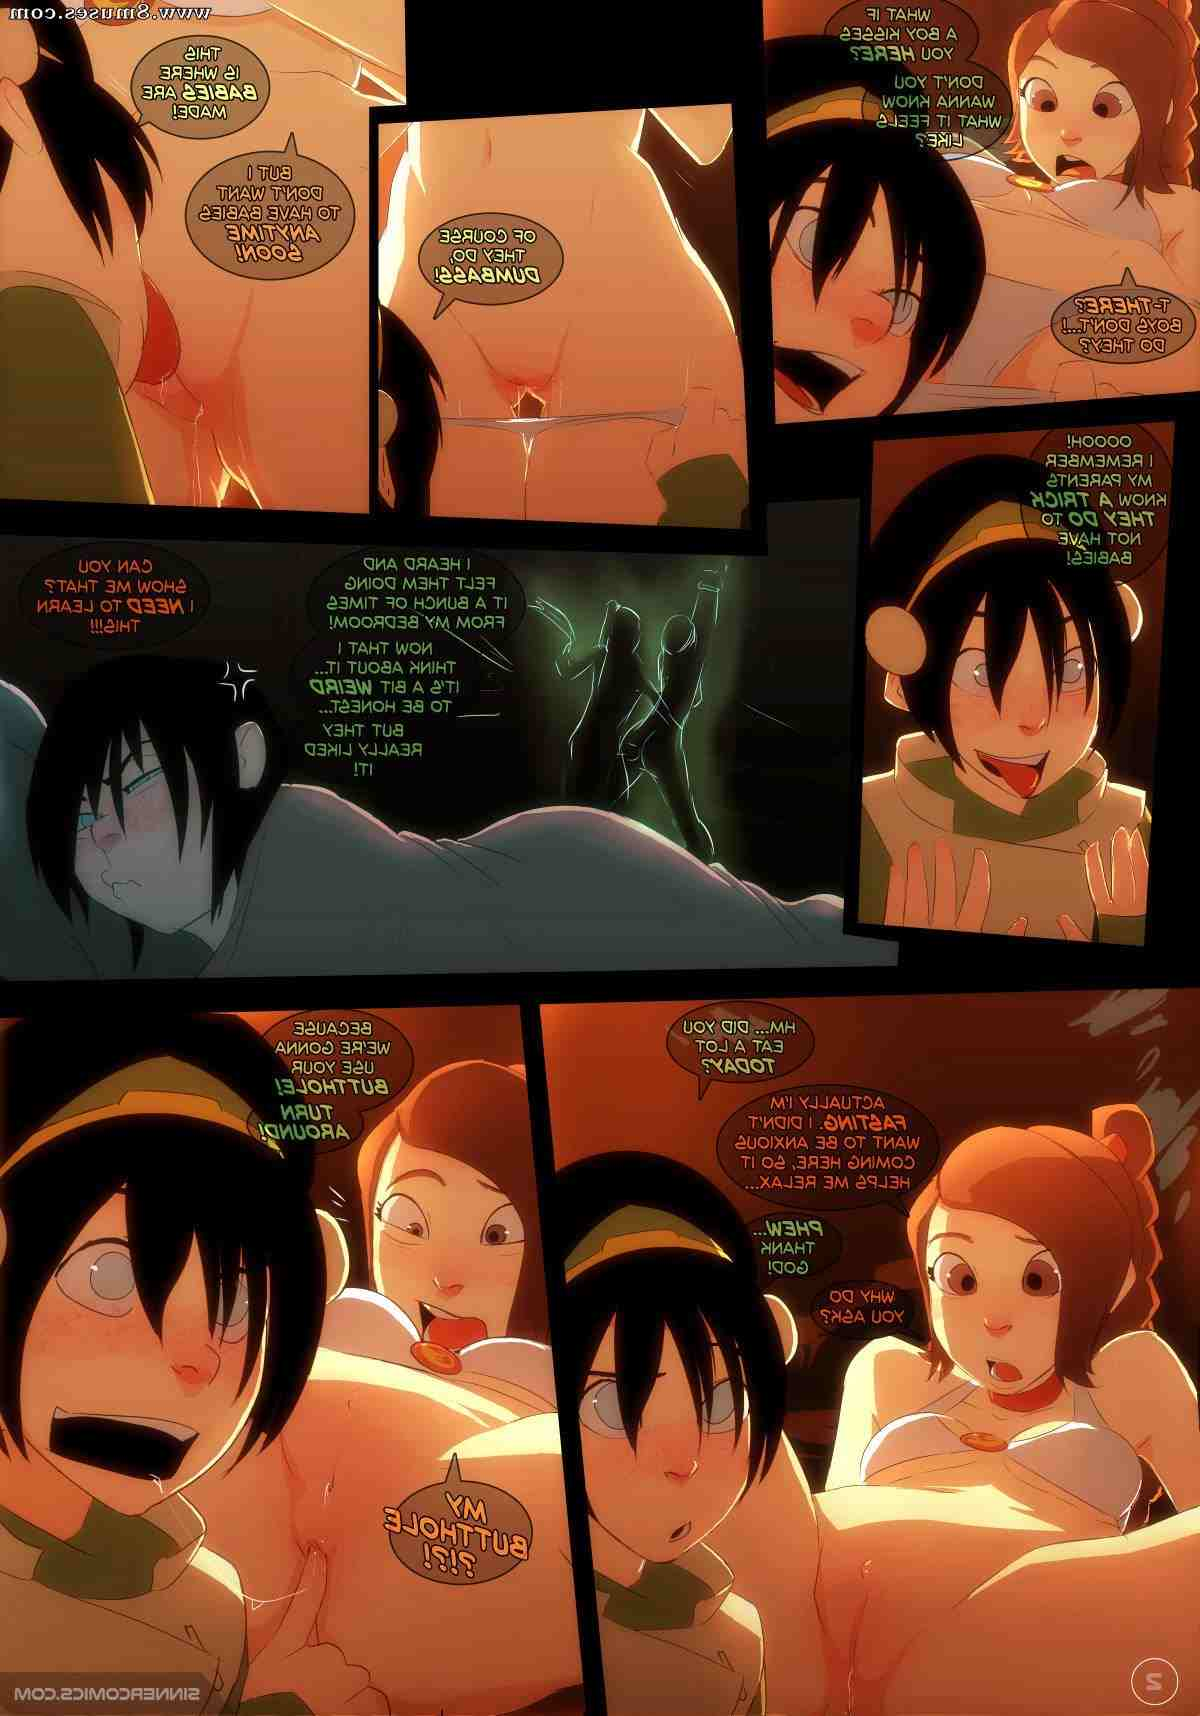 Various-Authors/Sillygirl/Toph-vs_-Ty-Lee-Avatar-the-Last-Airbender Toph_vs_Ty_Lee_-_Avatar_the_Last_Airbender__8muses_-_Sex_and_Porn_Comics_2.jpg